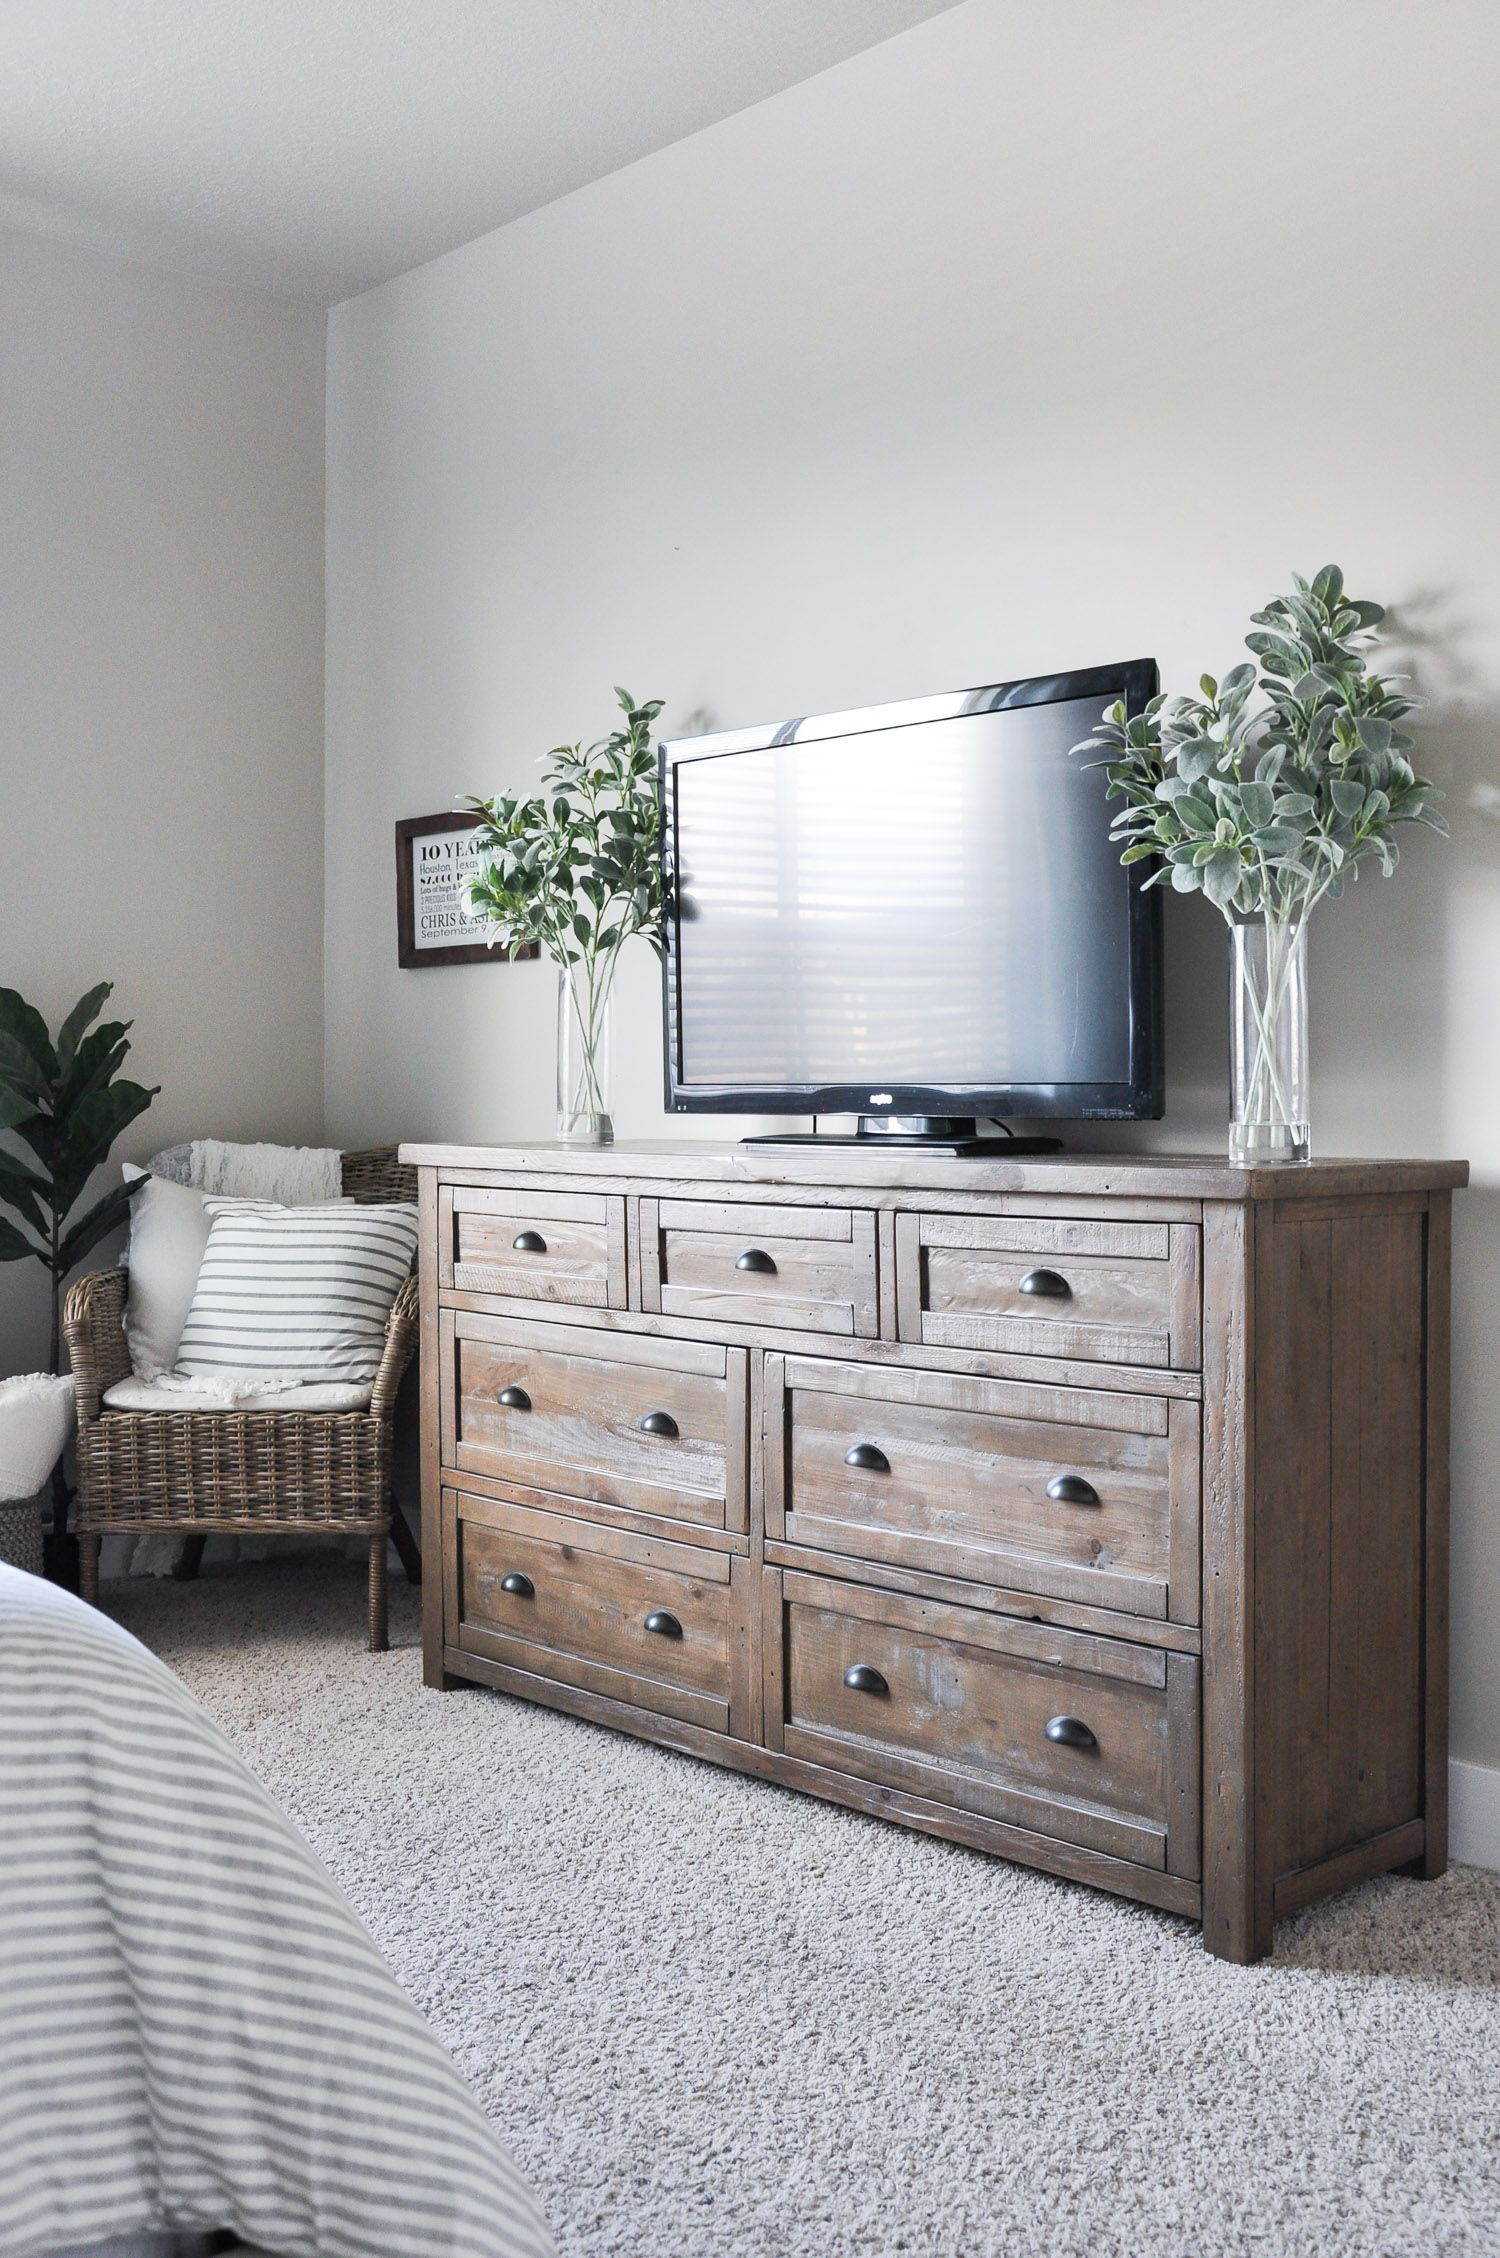 Create A Beautiful Modern Farmhouse Master Bedroom By Combining Items From Few Different Styles To Give You The Look Love